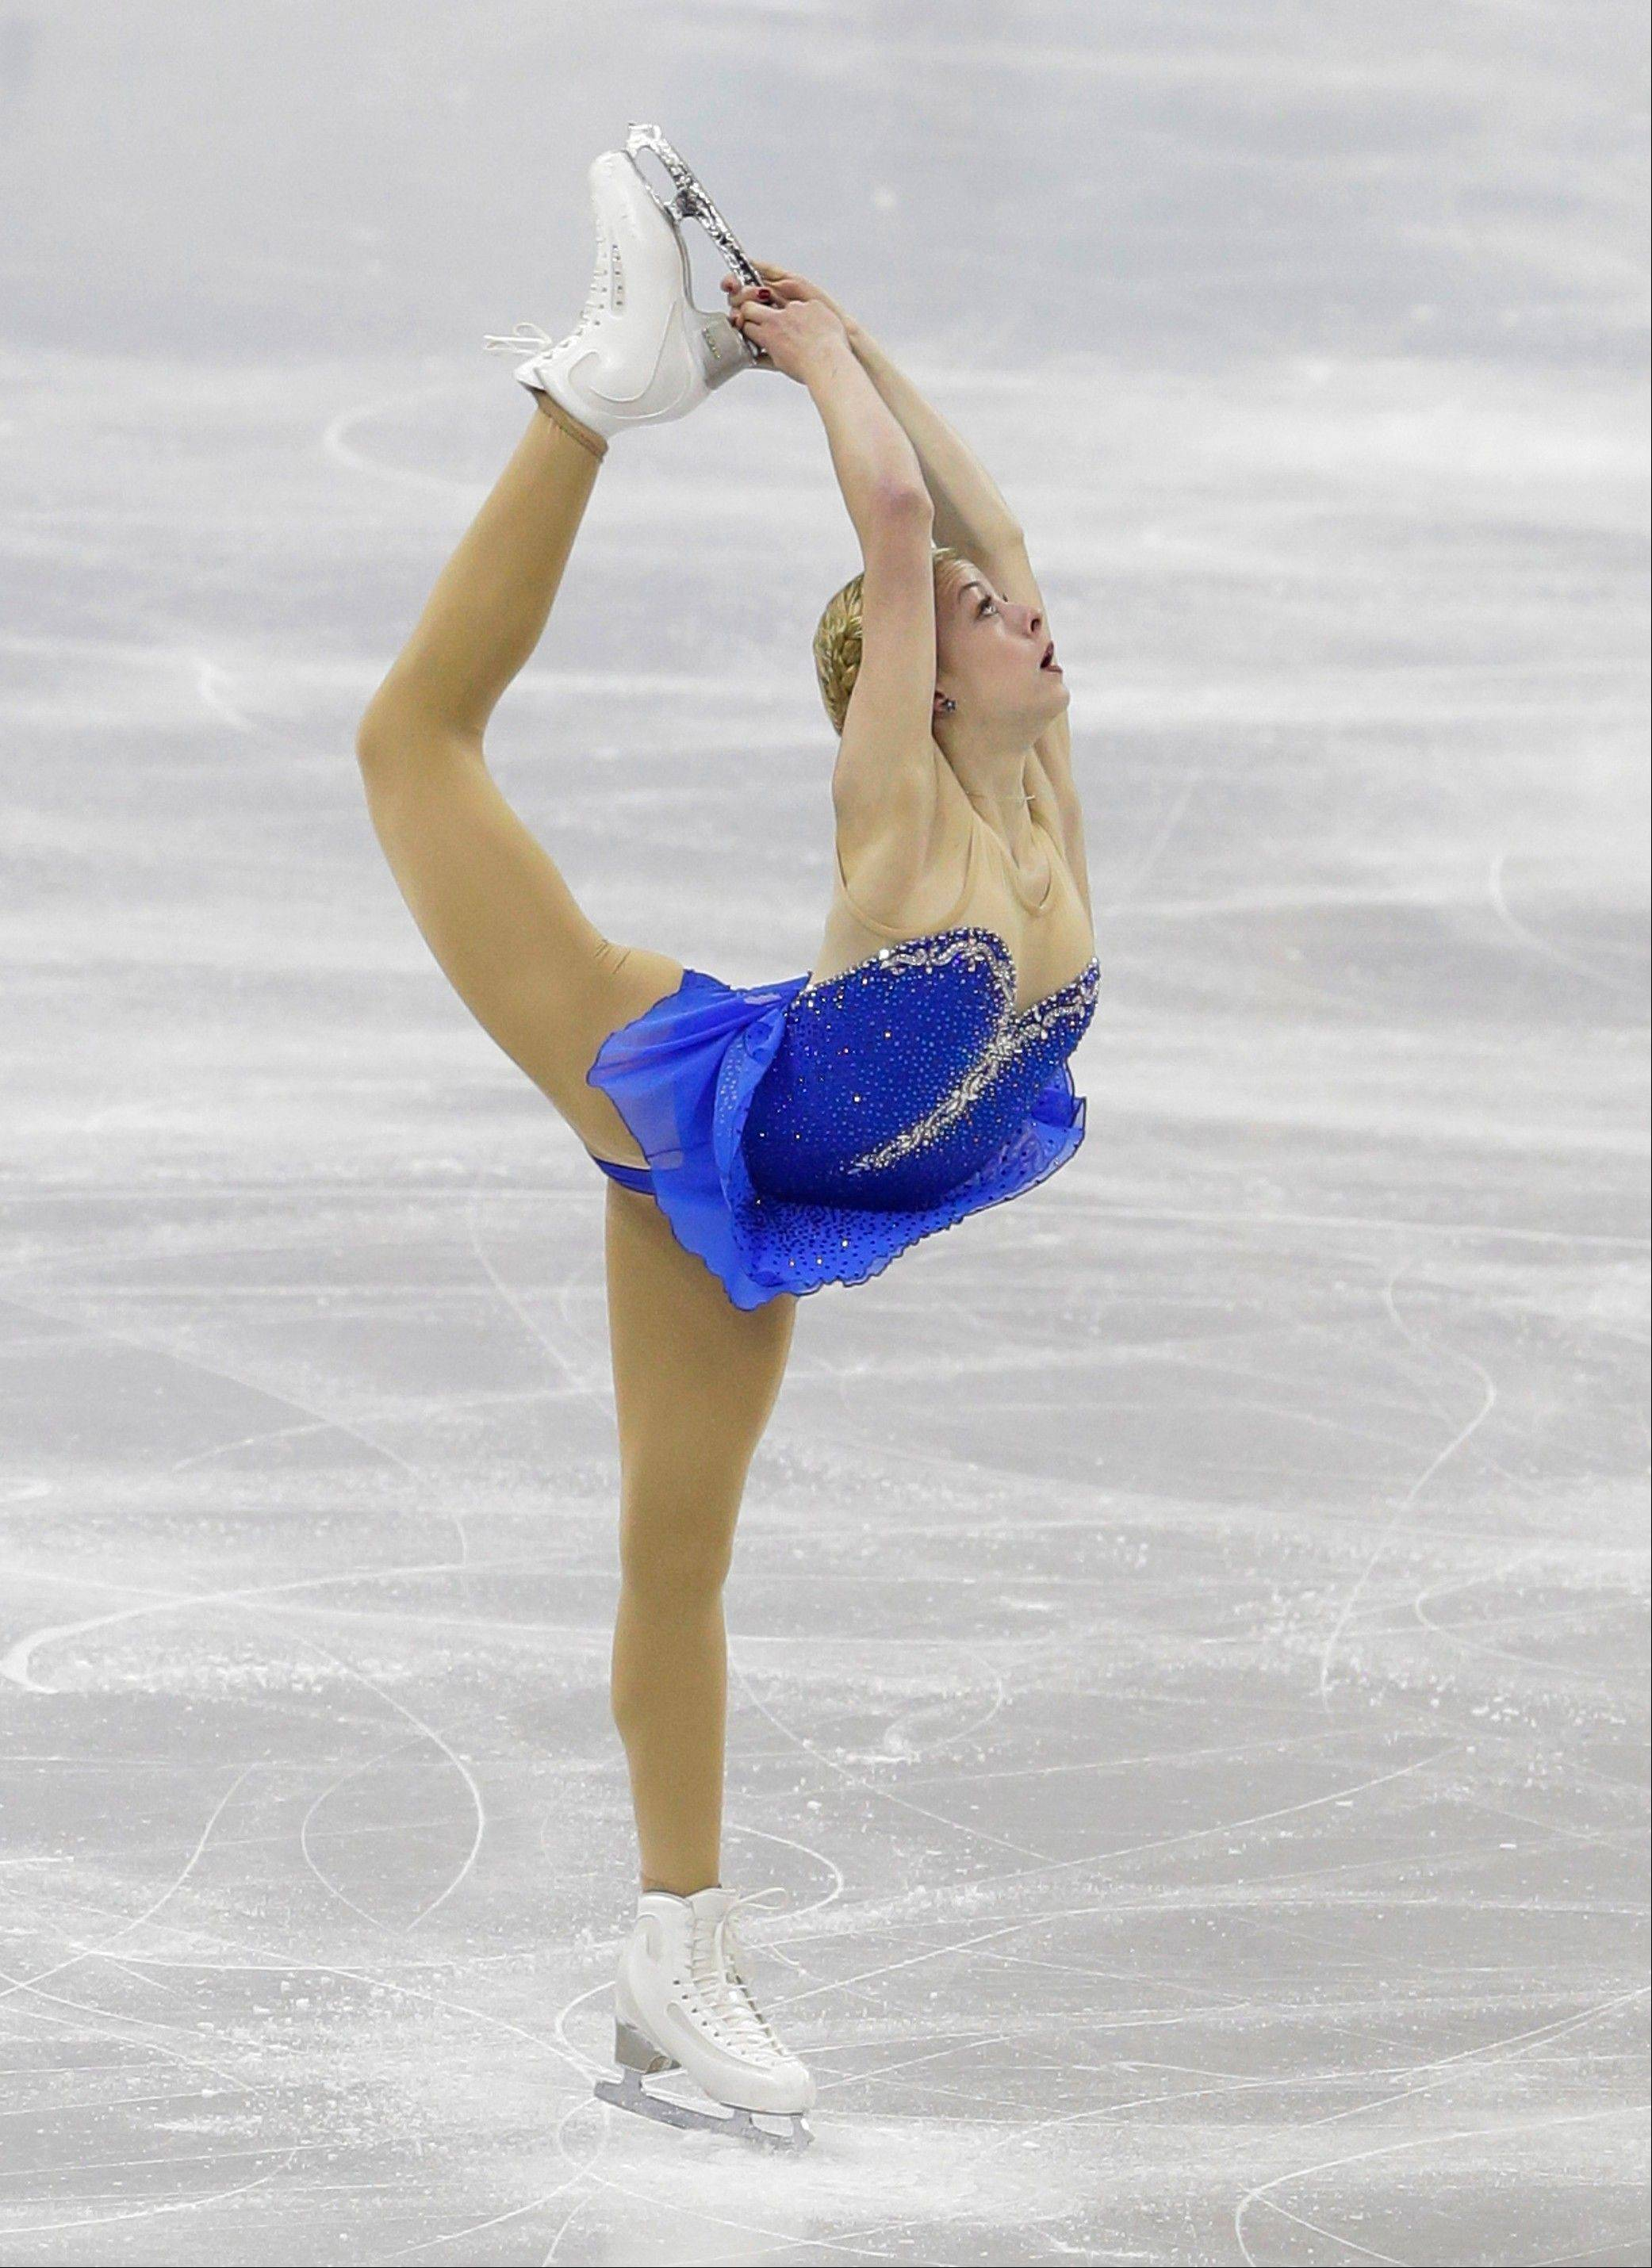 Gracie Gold competes in the senior ladies free skate program at the U.S. figure skating championships in Omaha.